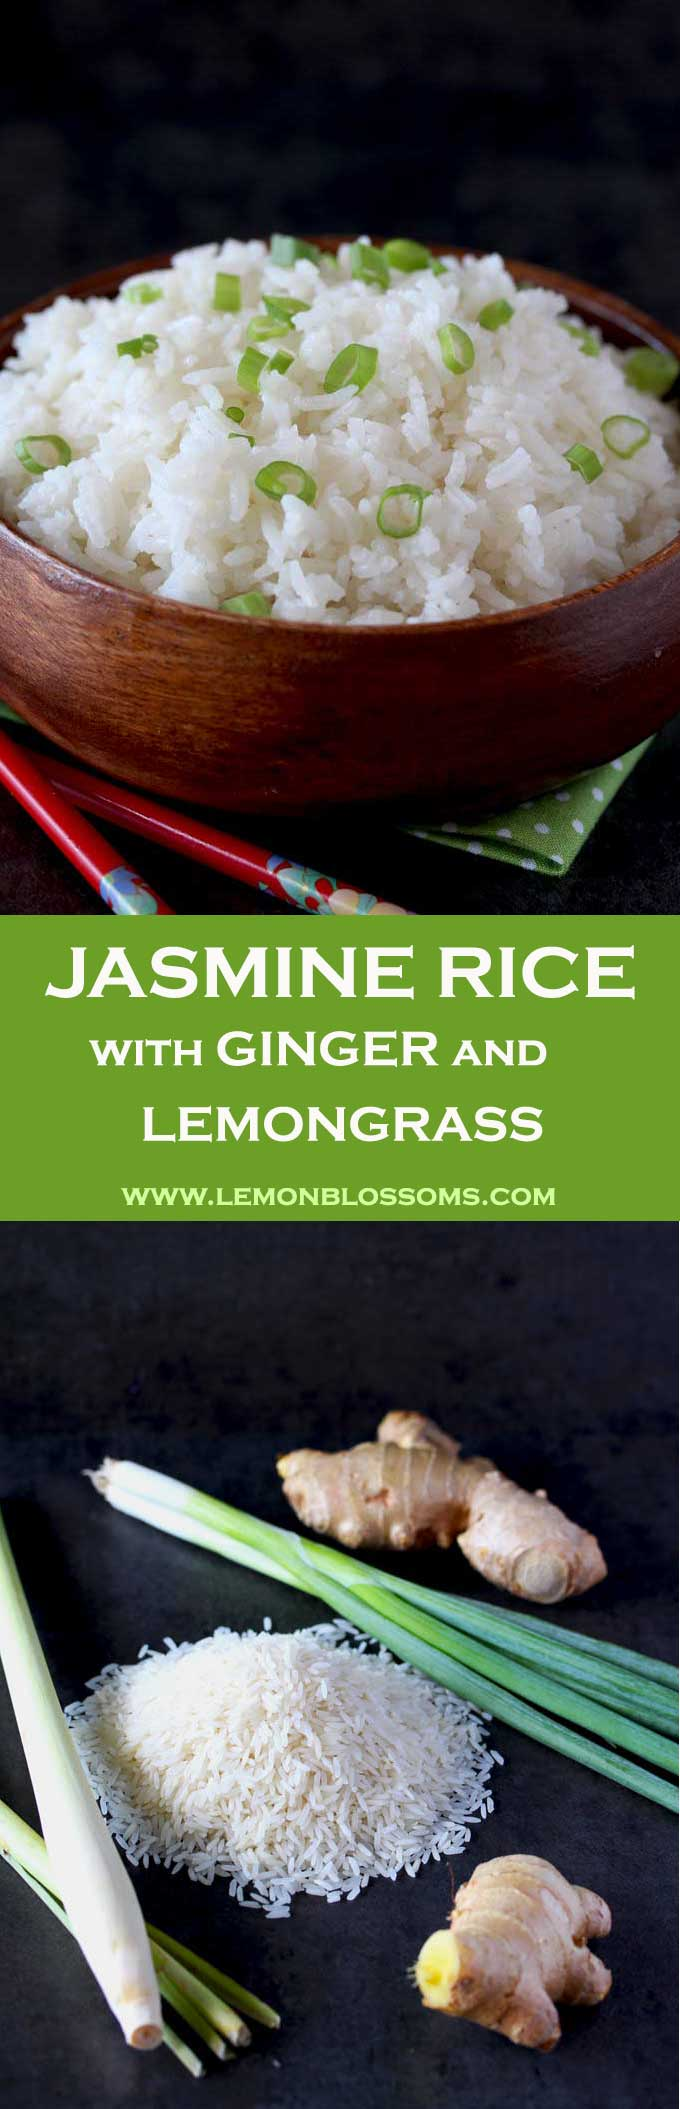 This Jasmine Rice is light, fluffy and aromatic. Infused with the warmth of ginger and the bright citrus flavors of lemongrass. The perfect accompaniment for Asian inspired dishes. Plus my secrets for making the perfect fluffiest rice!